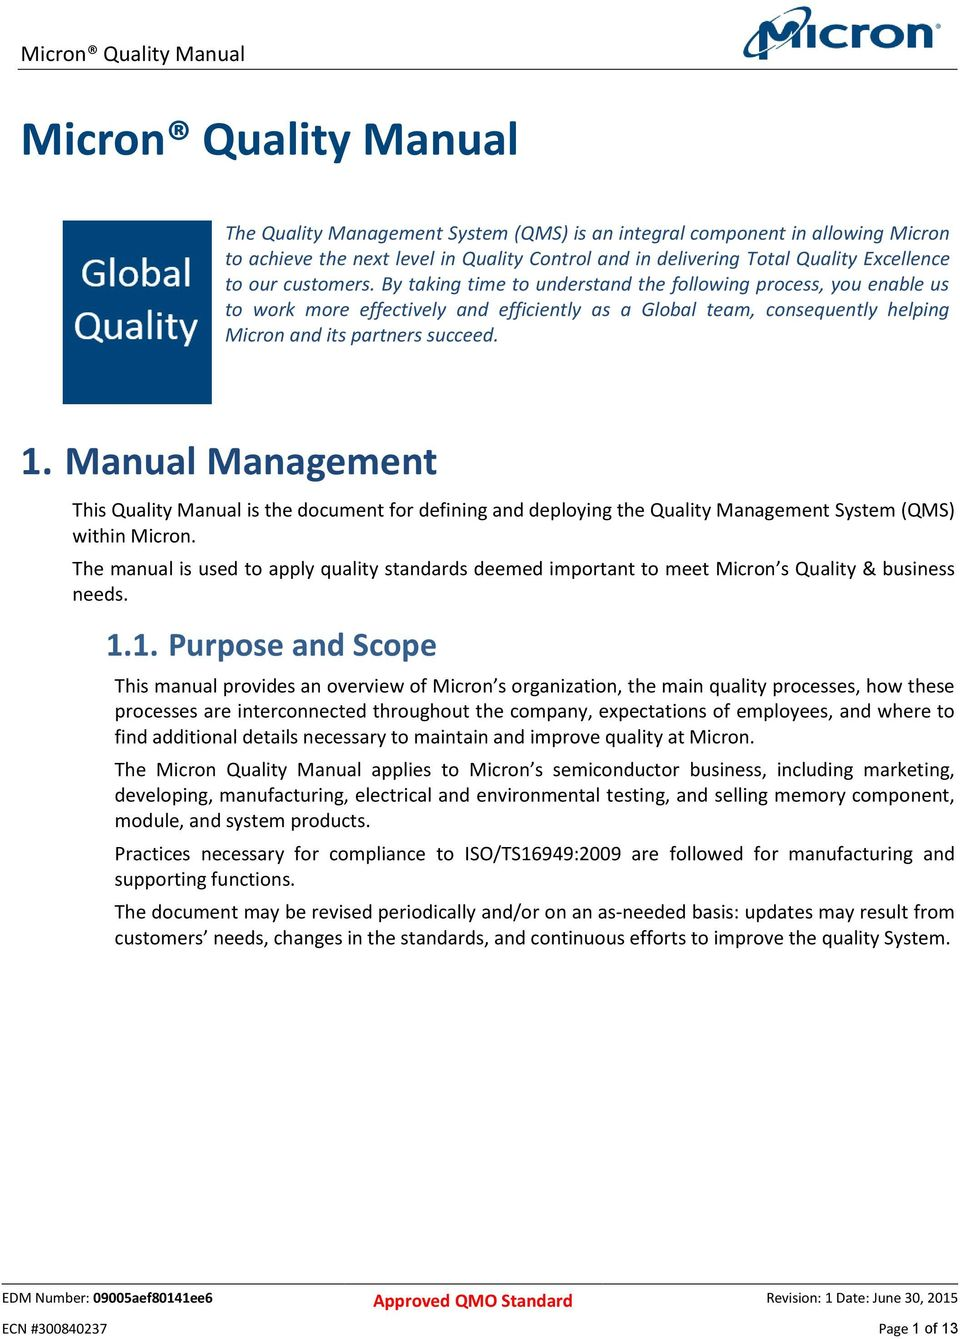 Manual Management This Quality Manual is the document for defining and deploying the Quality Management System (QMS) within Micron.